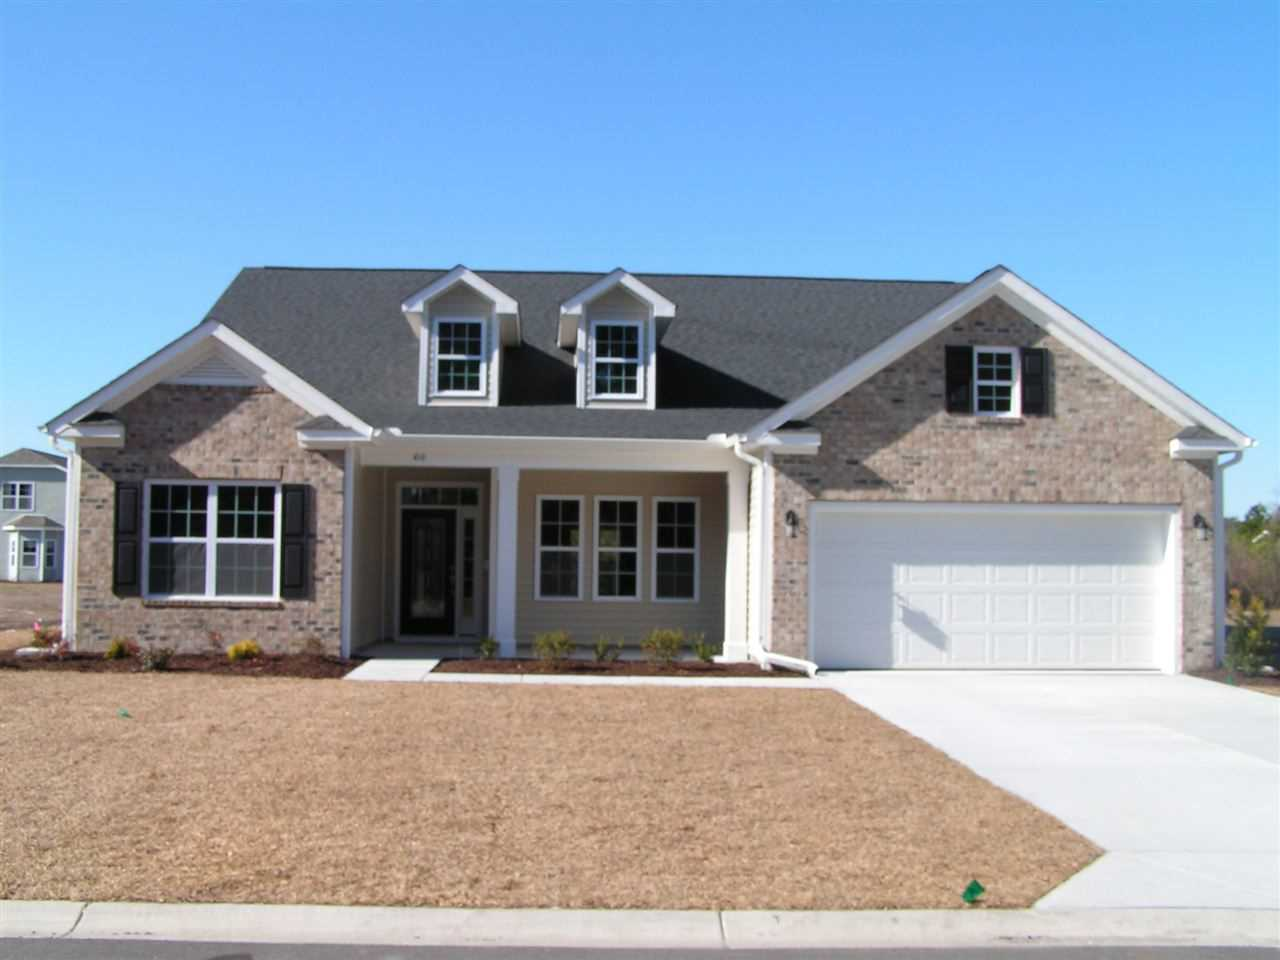 412 Rowells Ct Conway, SC 29526 | MLS 1724129 Photo 1